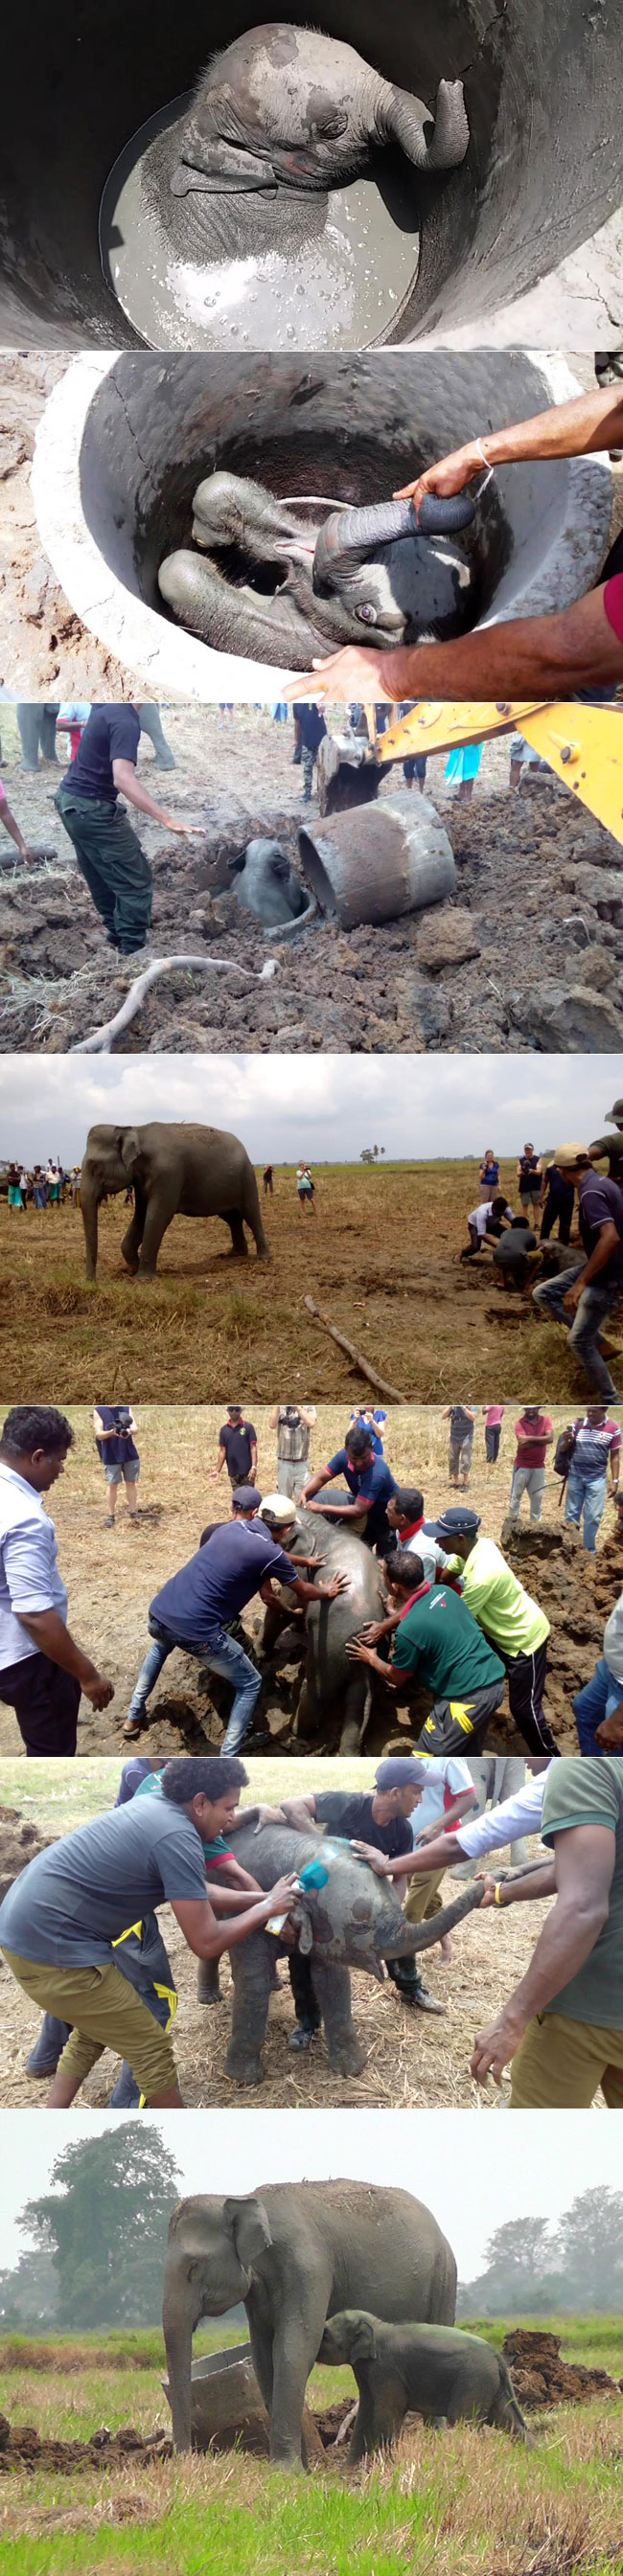 Elephant rescue operation...